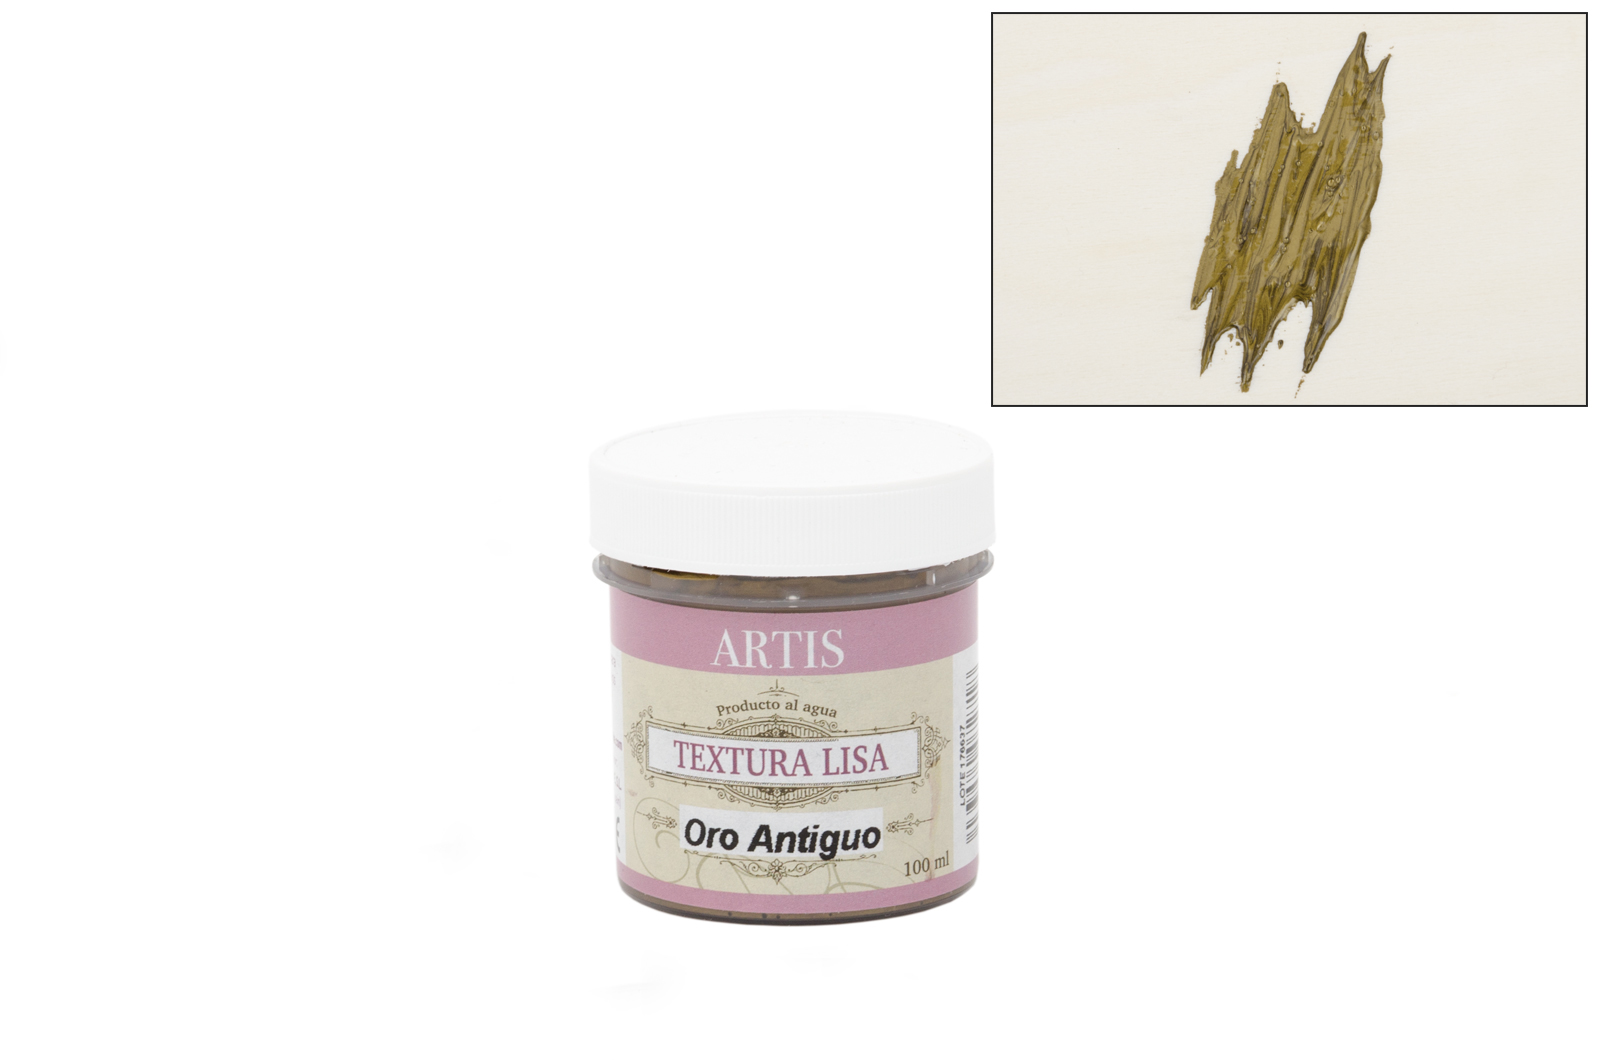 TEXTURA LISA OURO ANTIGO 100ML 0807046